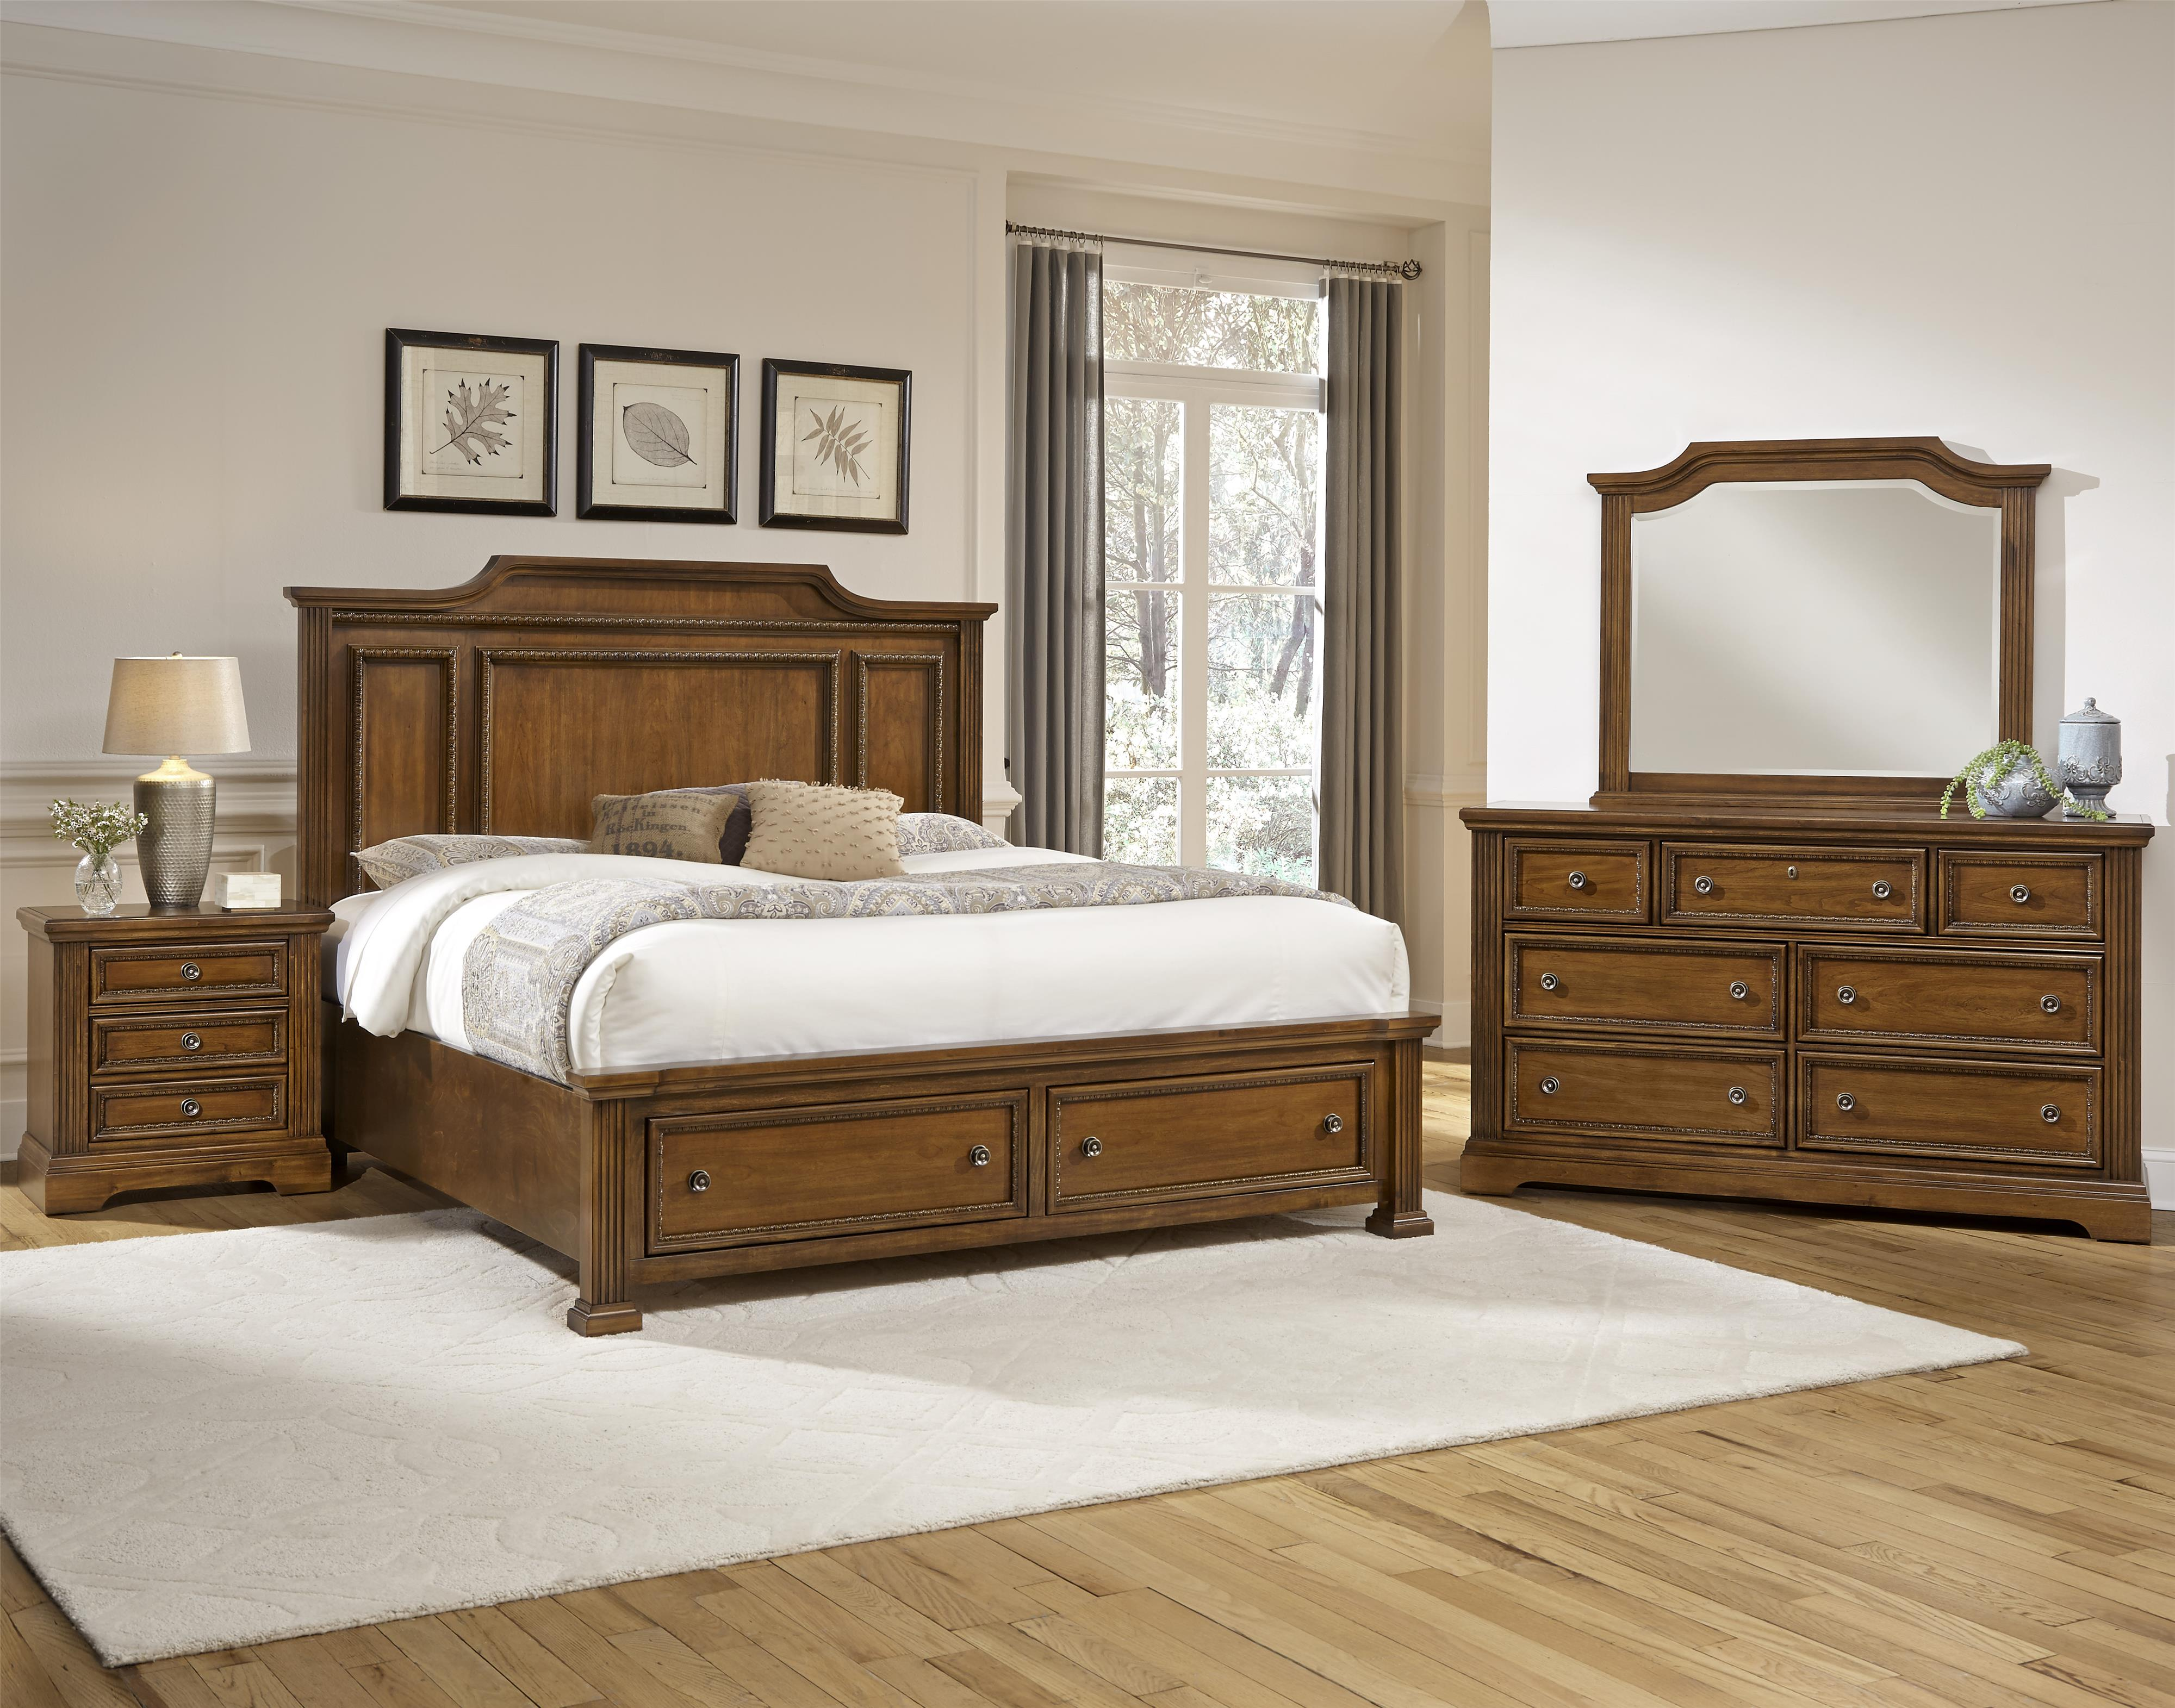 Vaughan Bassett Affinity Queen Bedroom Group - Item Number: 562 Q Bedroom Group 3